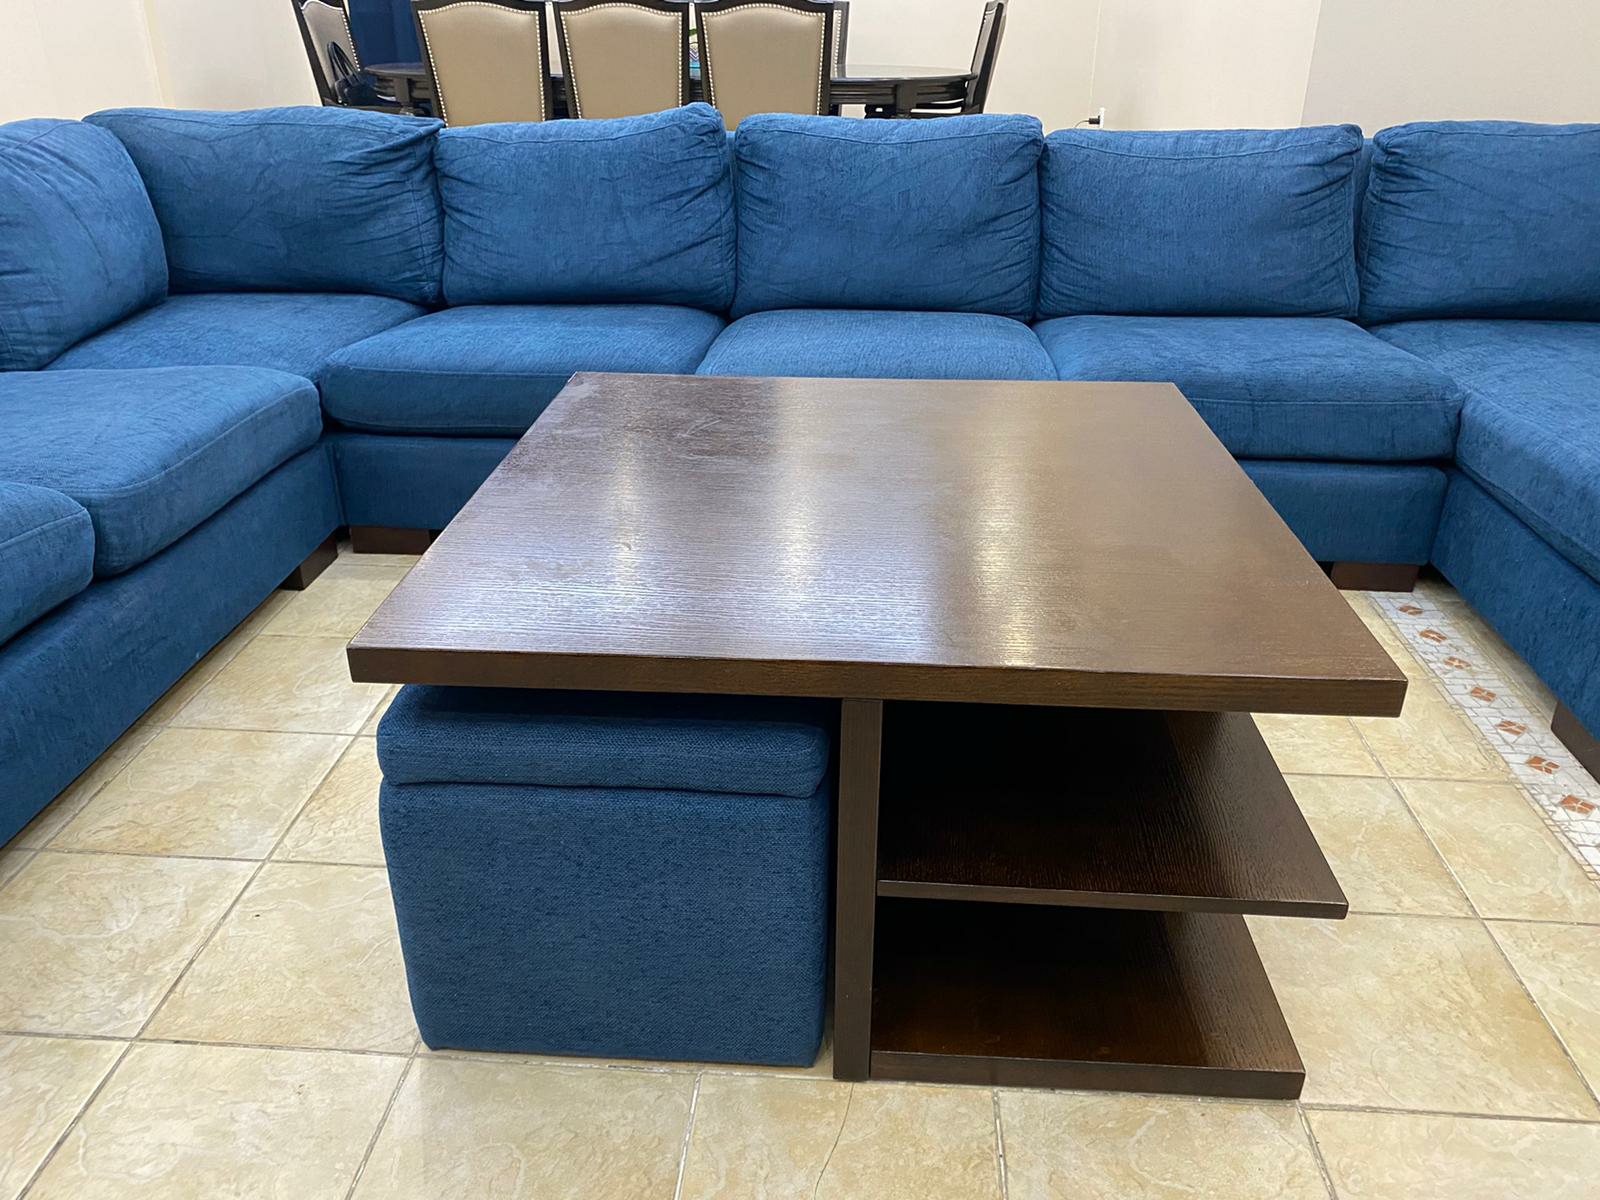 Corner sofa set of 7 seats with table